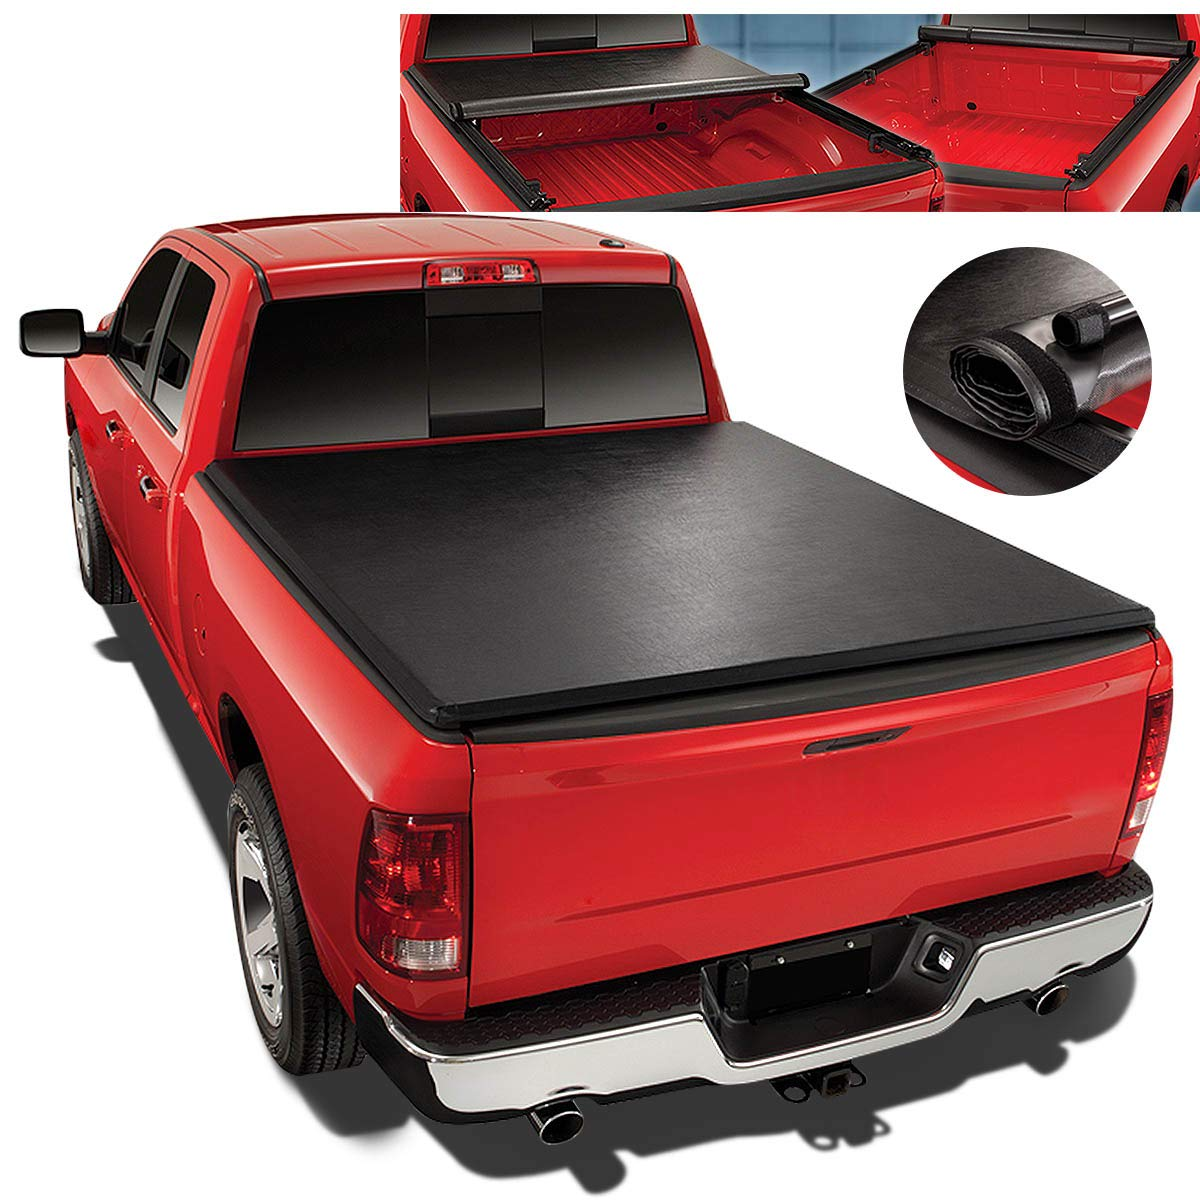 Auto Parts And Vehicles Auto Parts Accessories Osias Fit 14 18 Chevy Silverado Sierra 6 5 Ft Soft Roll Up Tonneau Cover New Truck Bed Accessories Blogdopelegrini Com Br